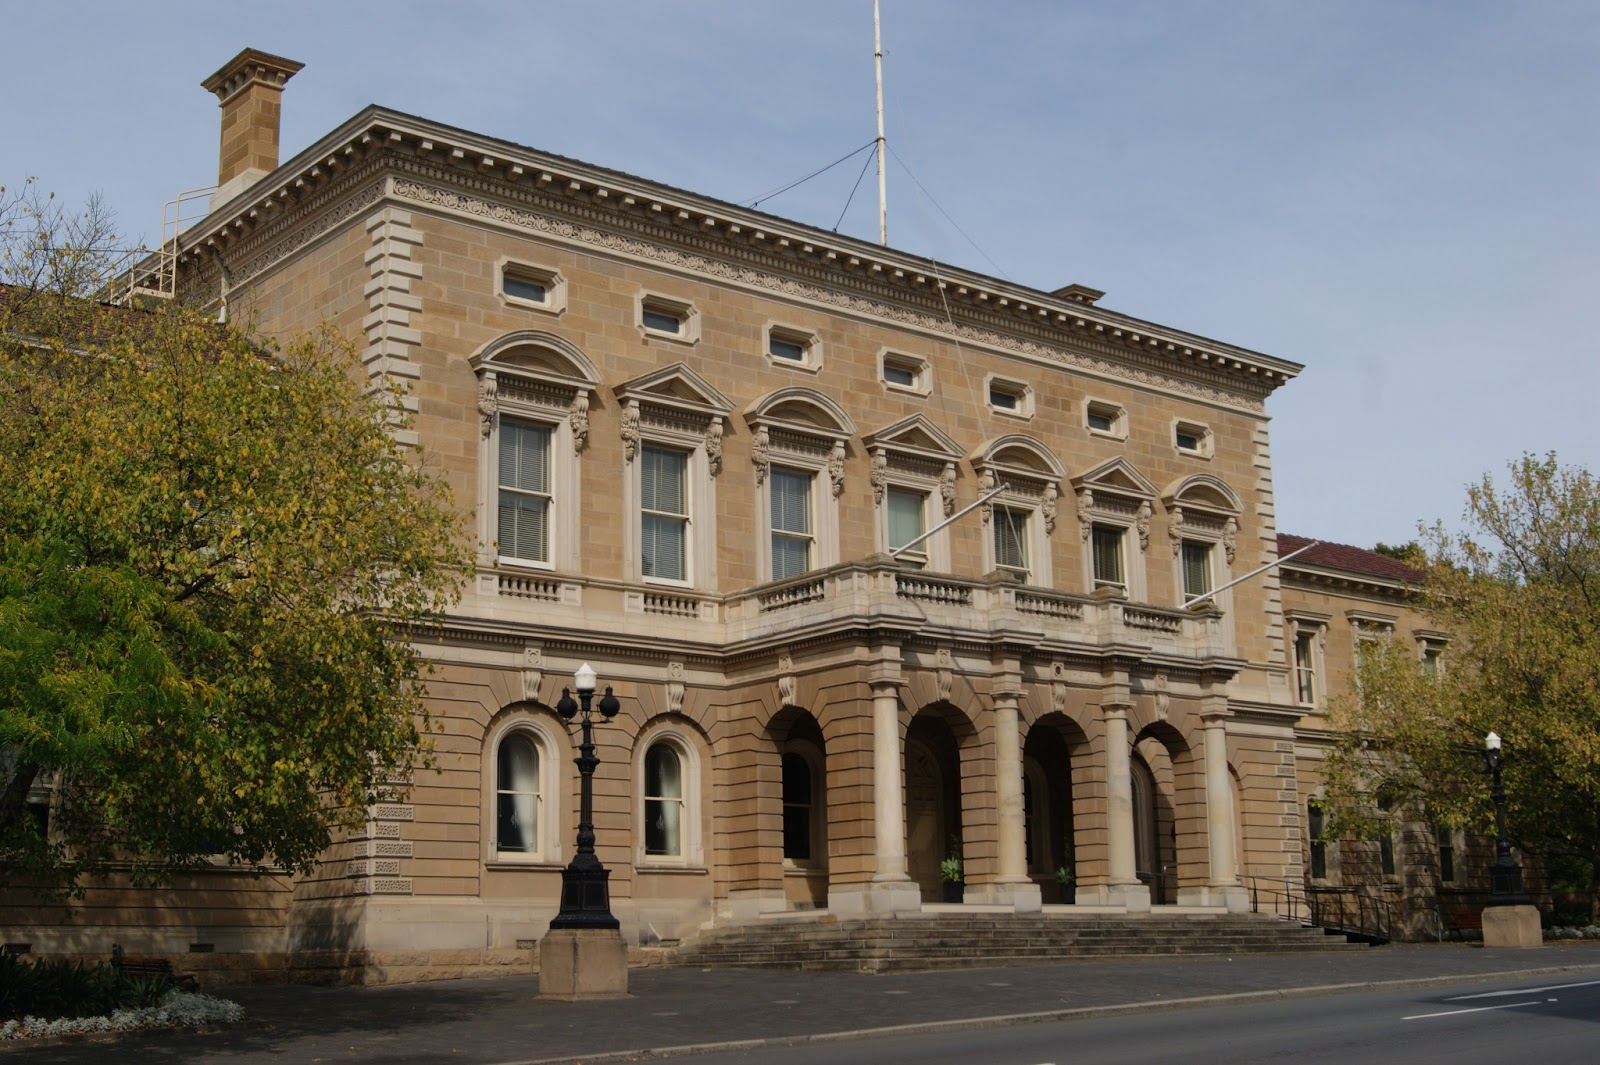 On The Convict Trail: Hobart Town Hall